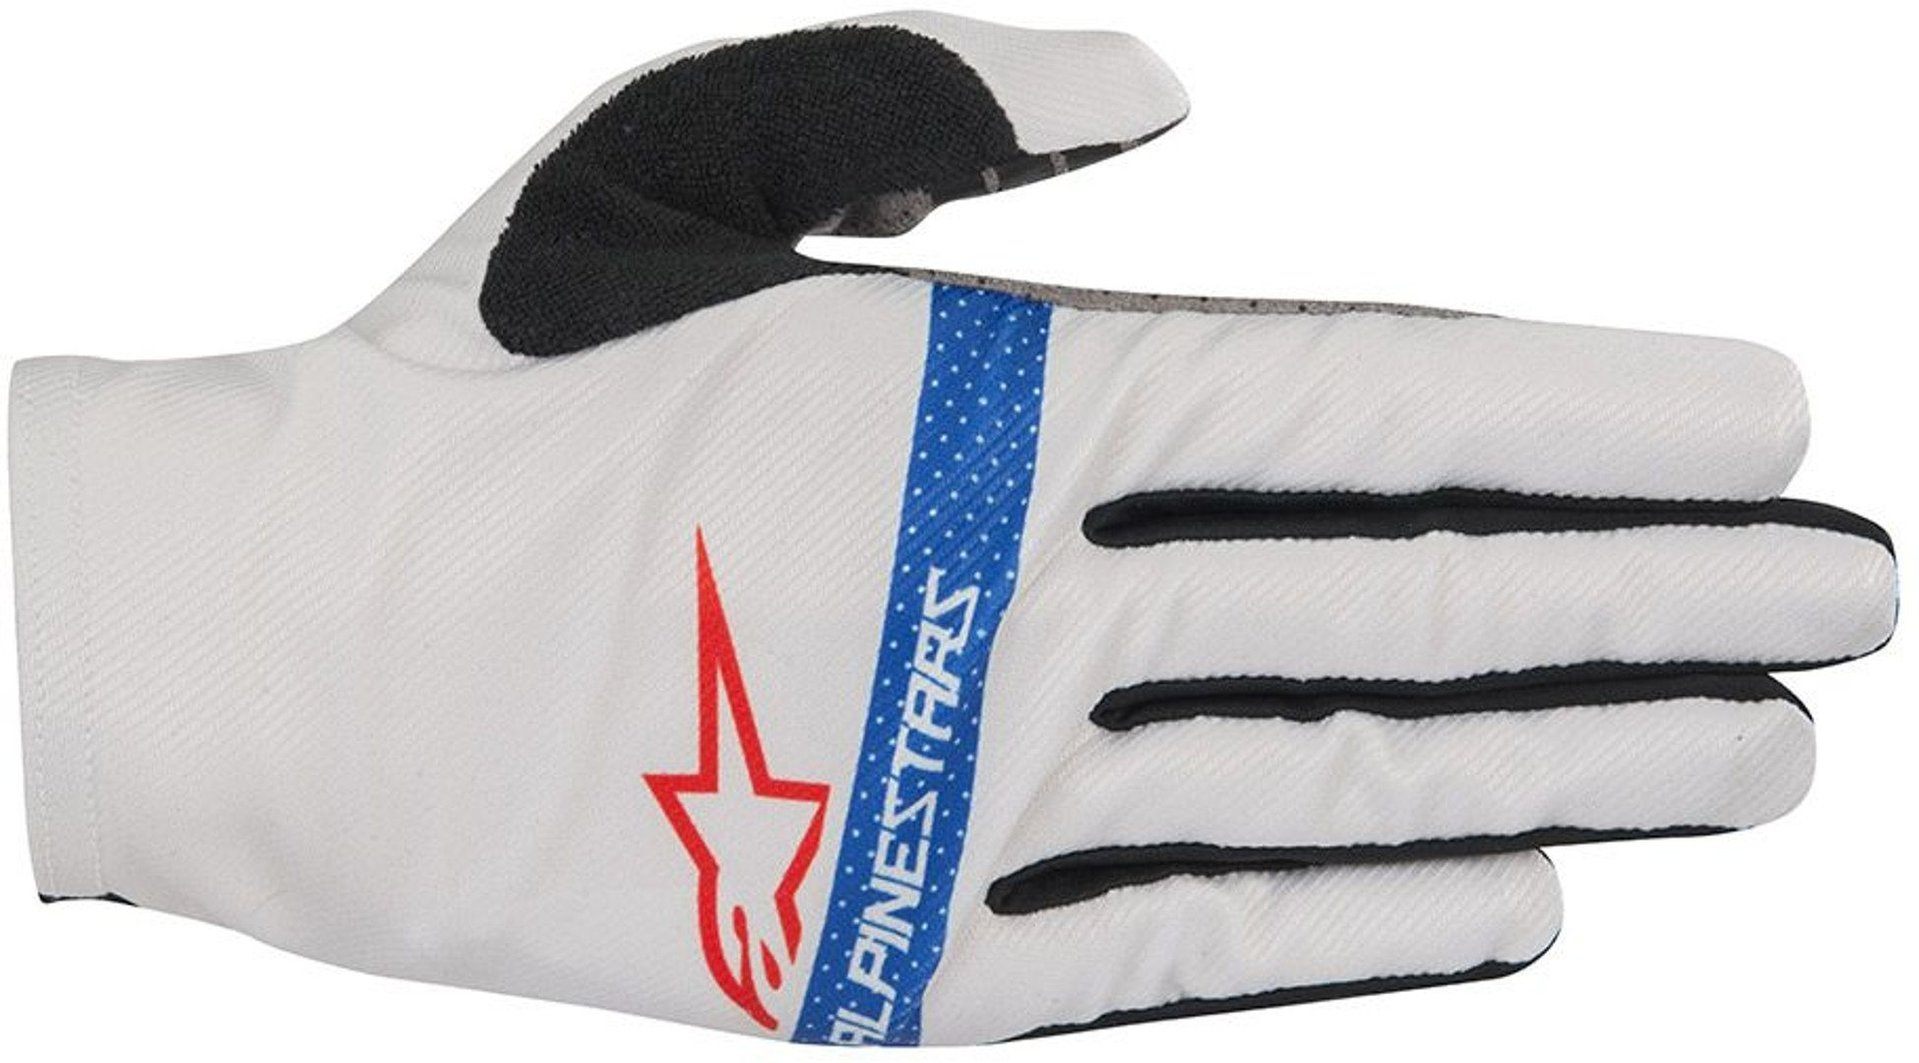 Alpinestars Aspen Pro Lite Bicycle Gloves, grey, Size L, grey, Size L